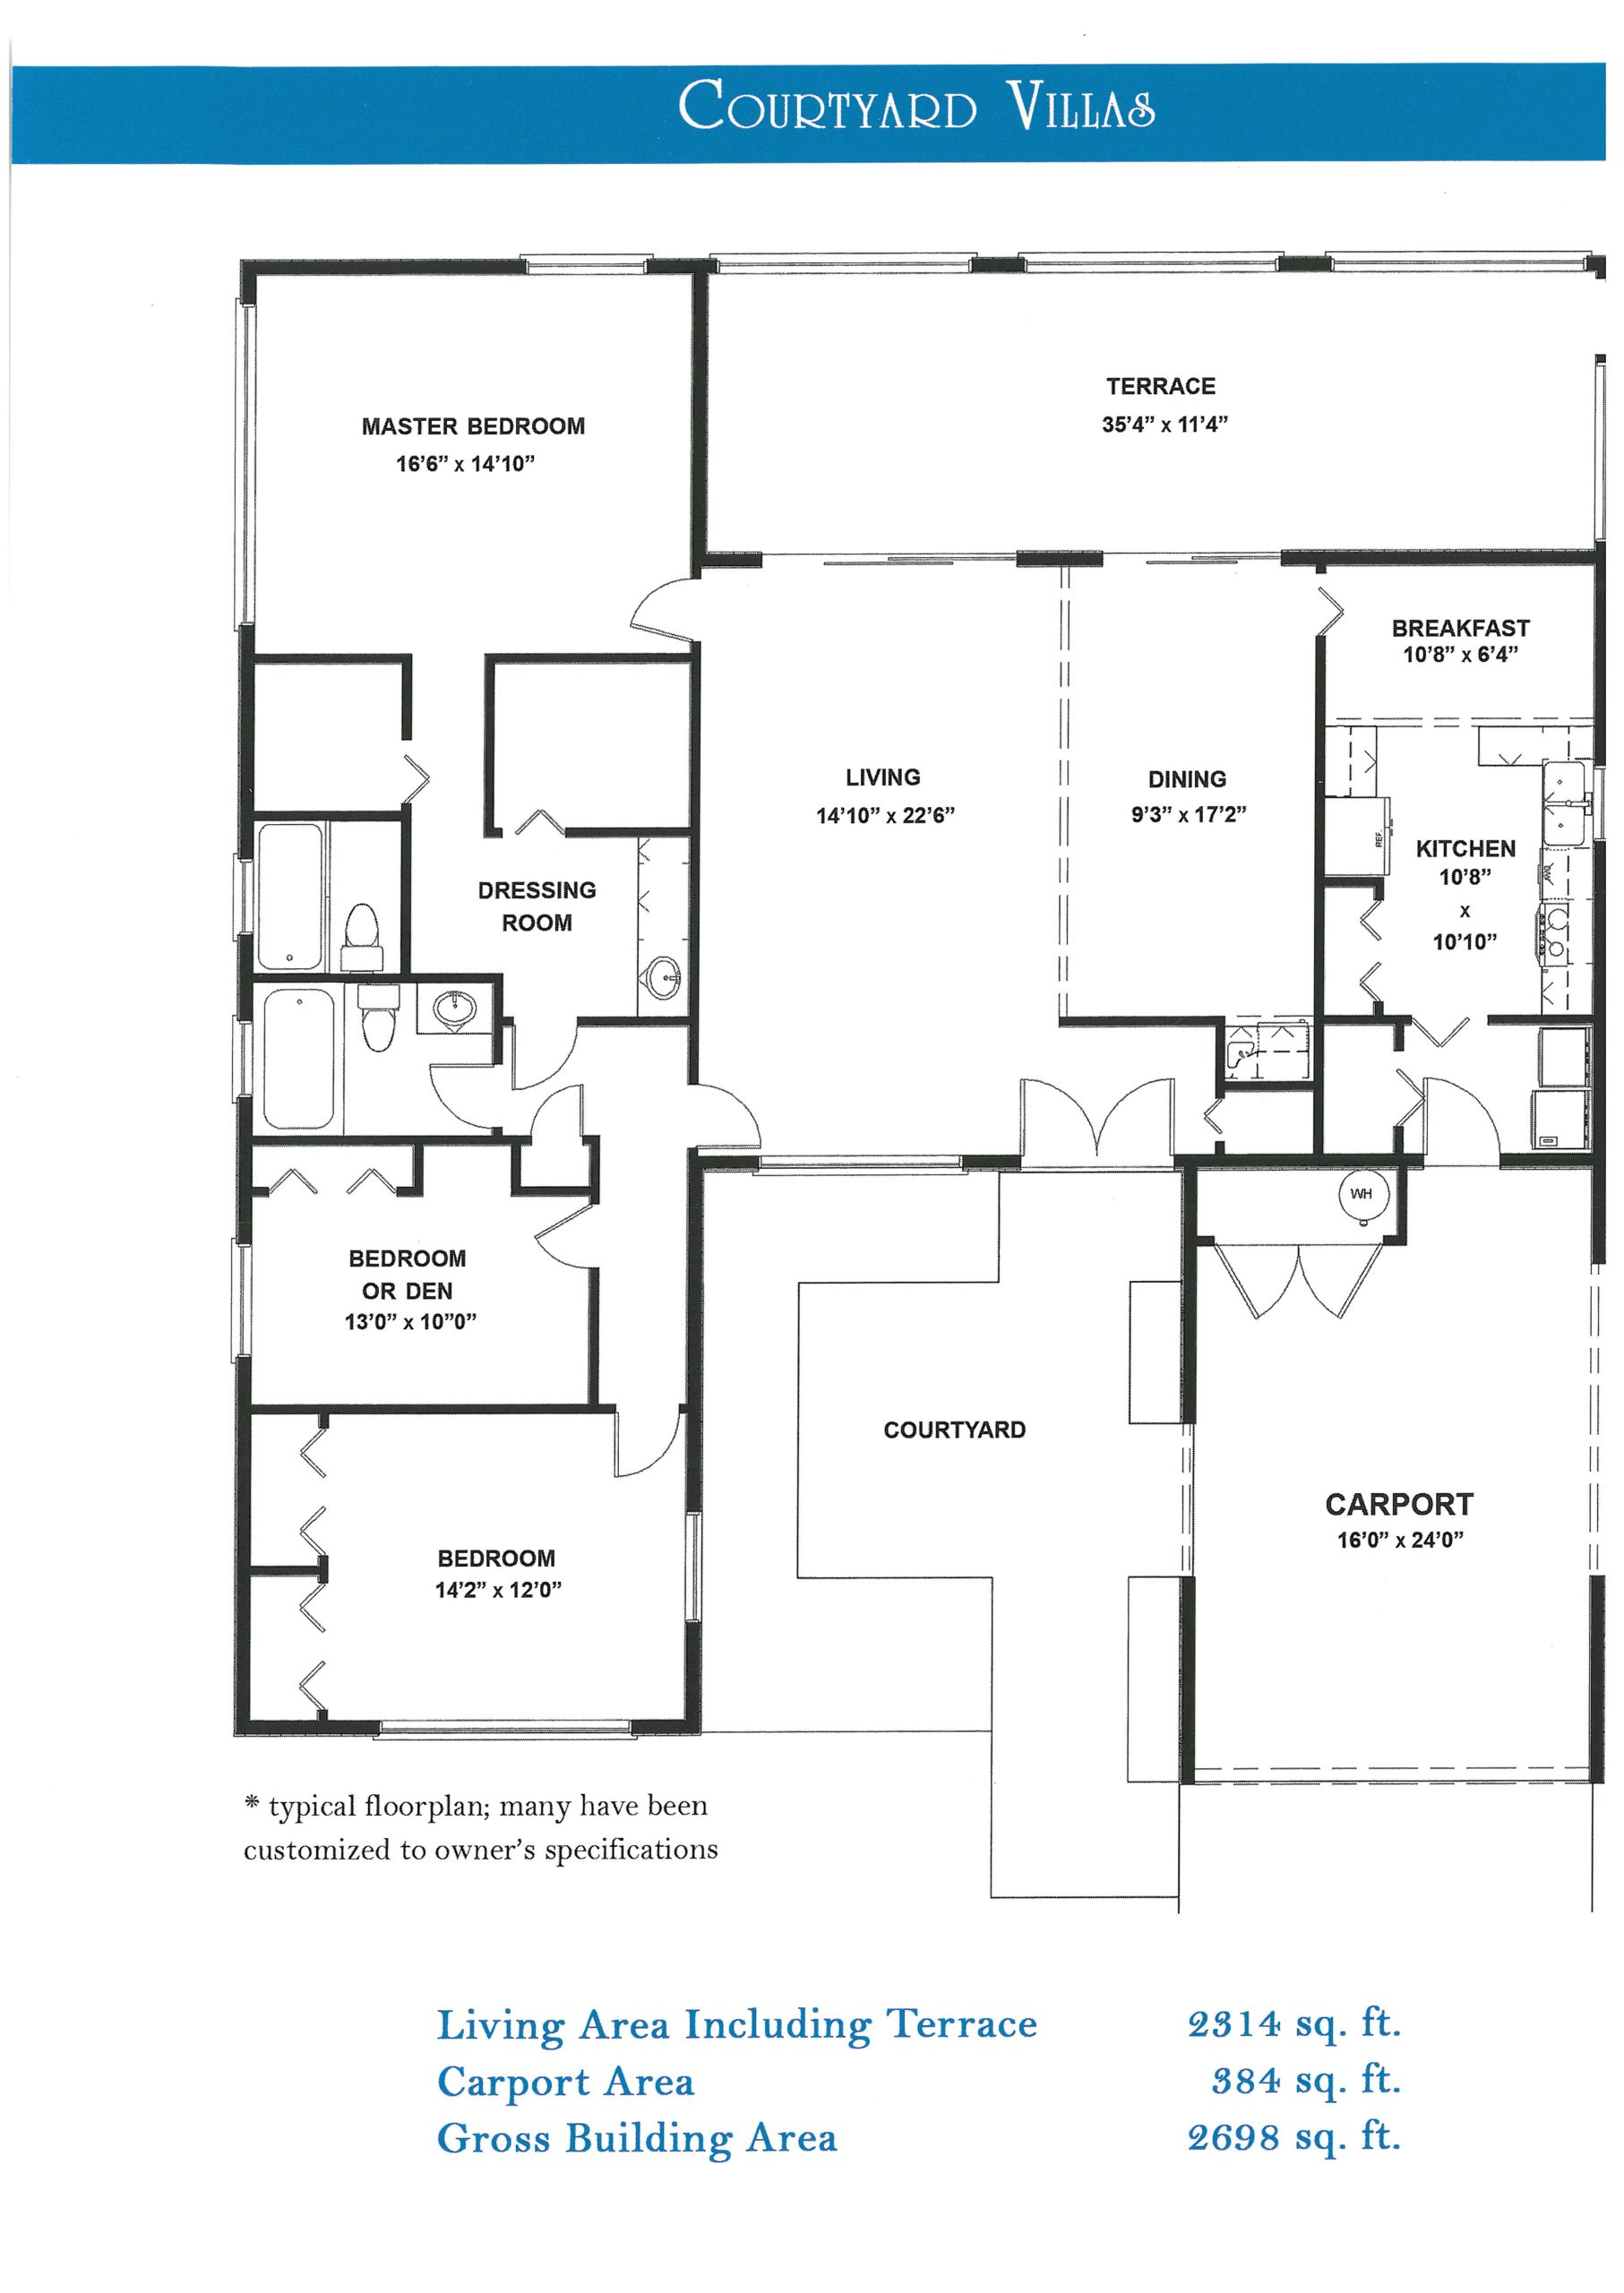 28 floor find floor plans by where can i find floor for Find floor plans by address